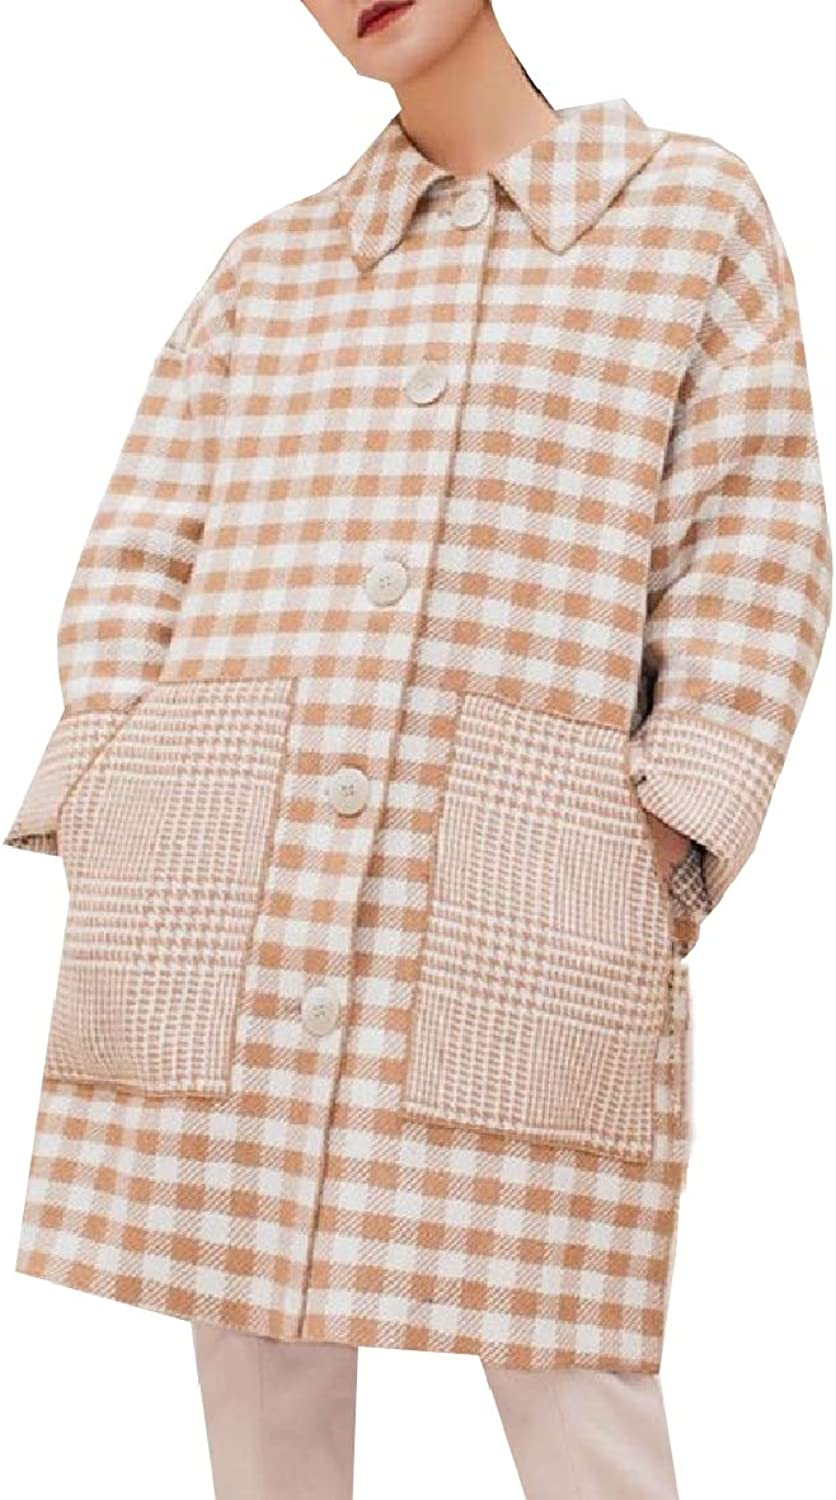 Coolhere Women WoolBlend Relaxed Gingham Vintage Plaid Trench Coat Jacket